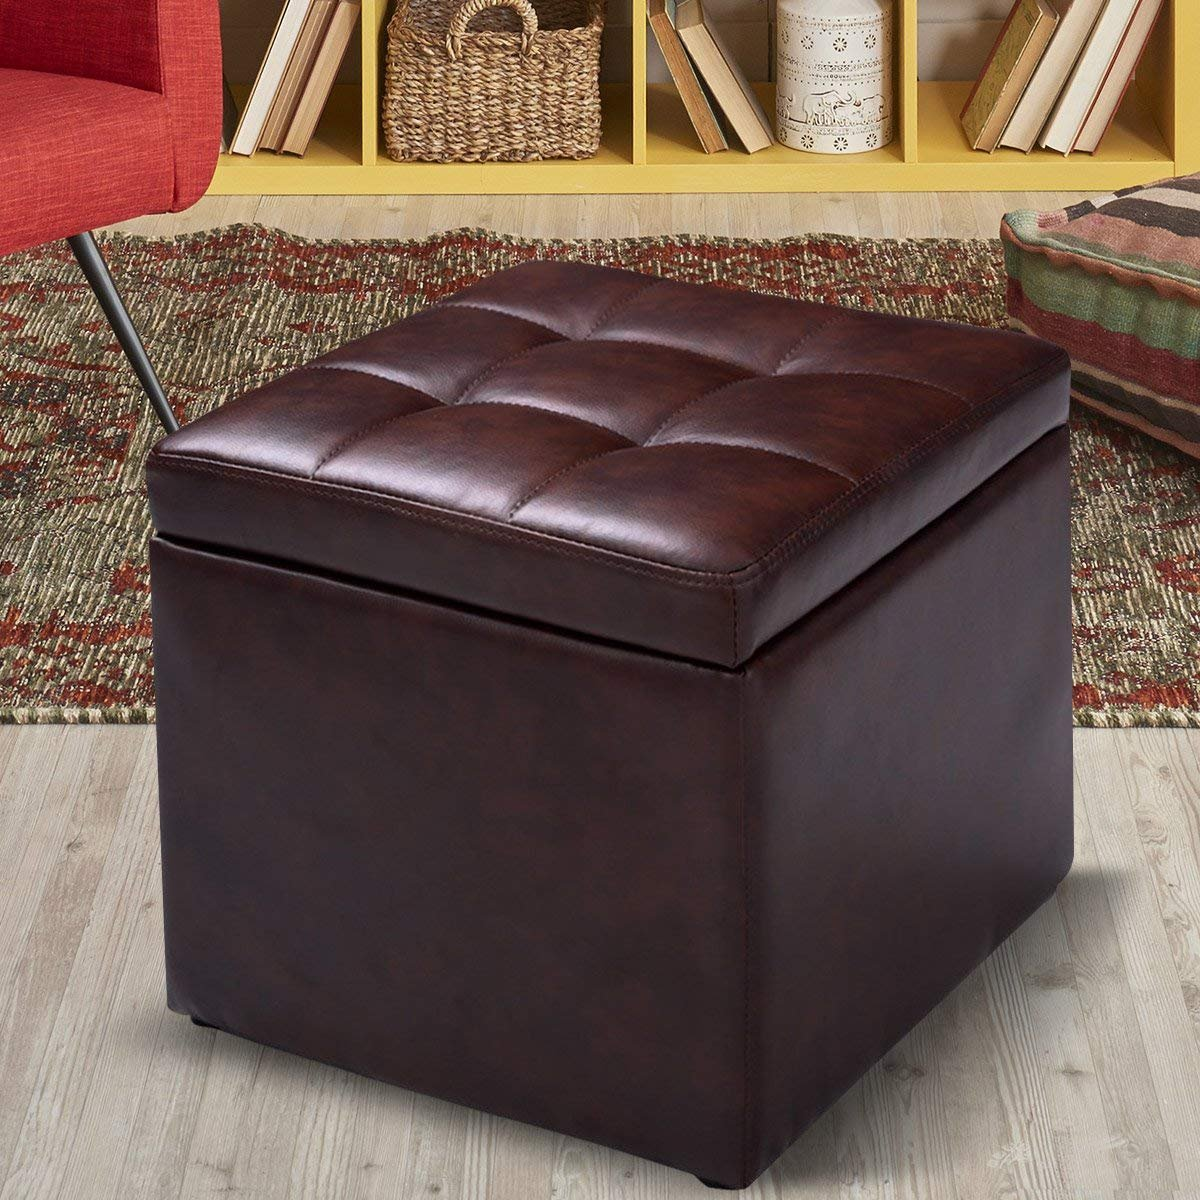 Costway Faux Leather Ottoman Pouffe Storage Toy Box Foot Stools Seater Bench Seat (Black)